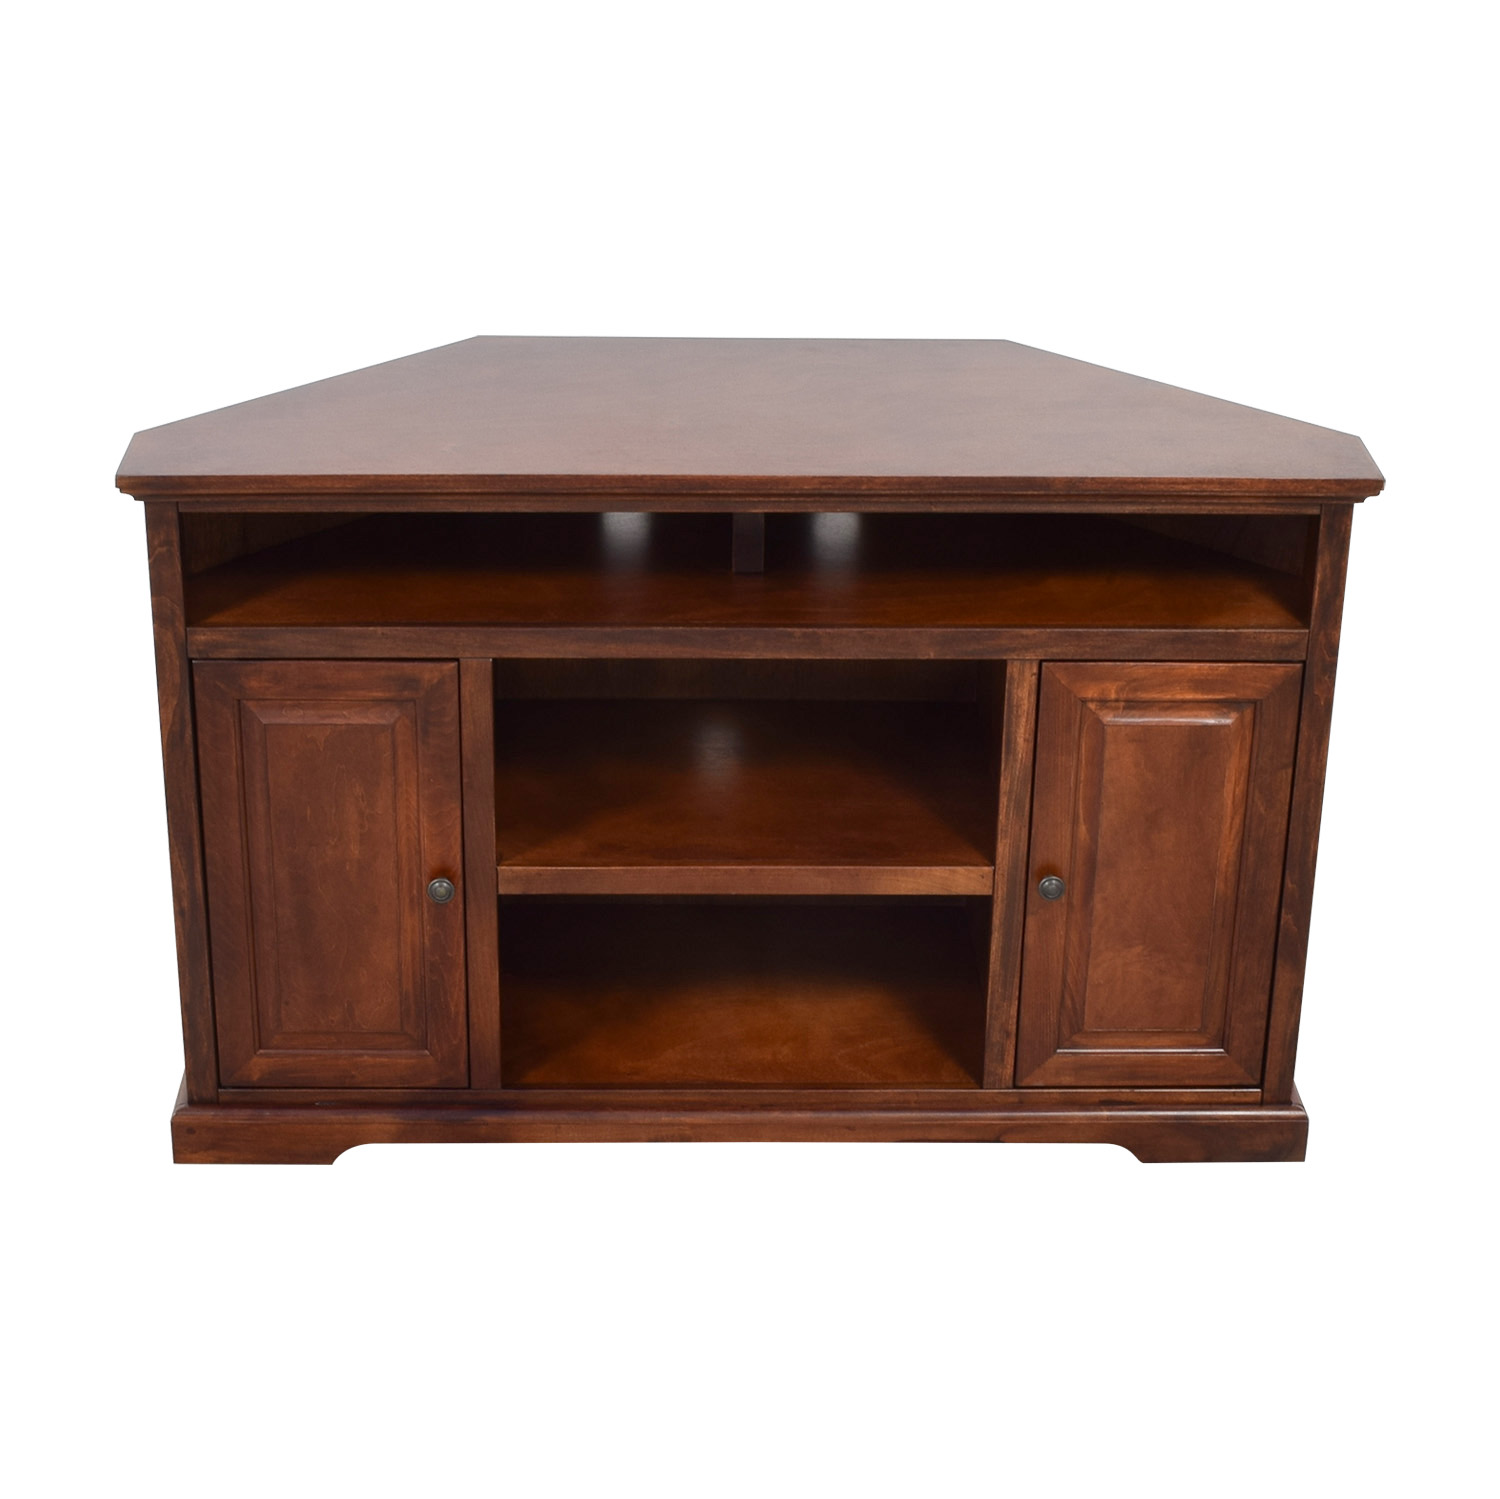 buy Darby Home Co. Legrand Corner TV Stand Darby Home Co.